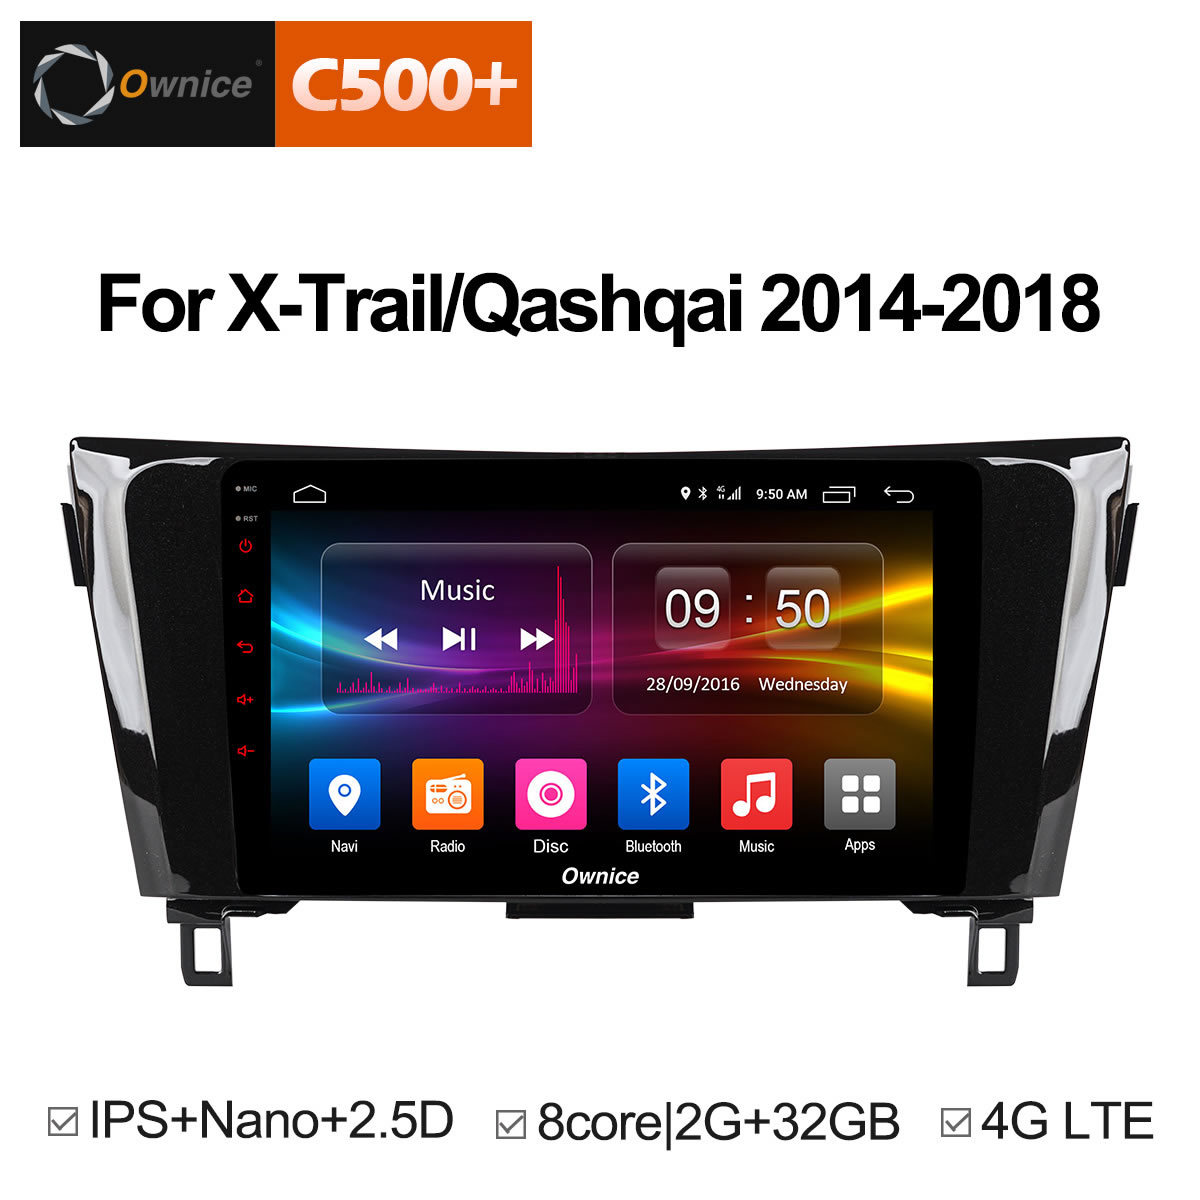 Ownice android 8.1 car DVD multimedia player 8 core 2g RAM 32 gb di ROM per Nissan Qashqai X- trail 2014-2018 4G GPS stereo headunit